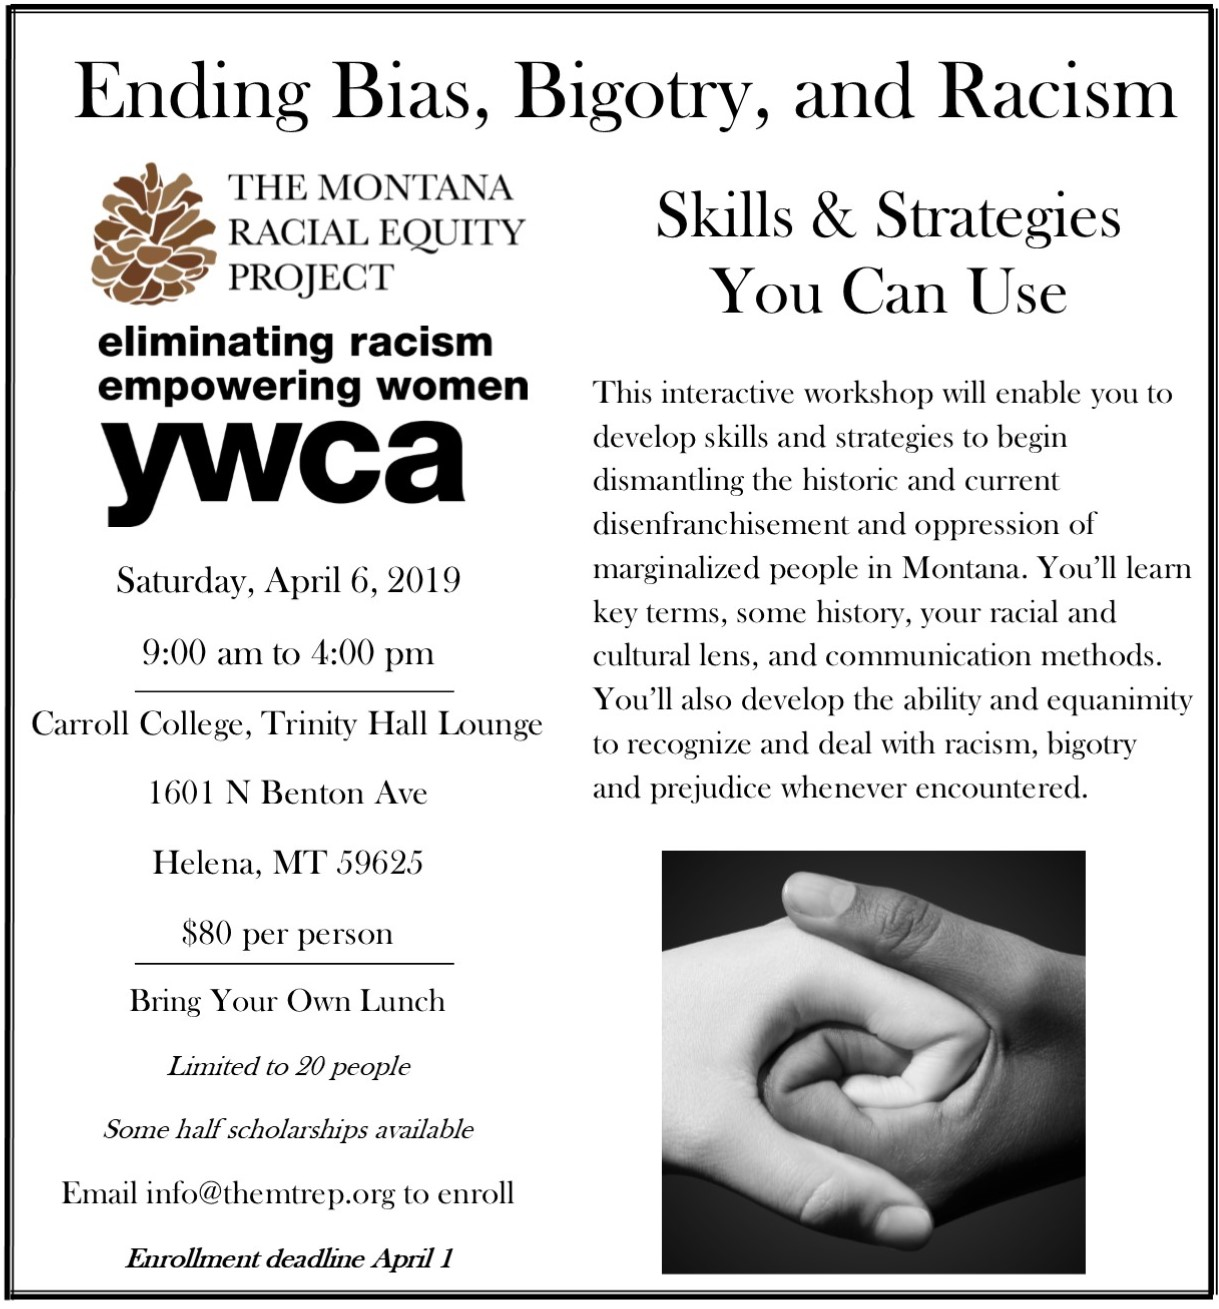 Ending Bias Bigotry and Racism: Skills and Strategies You Can Use